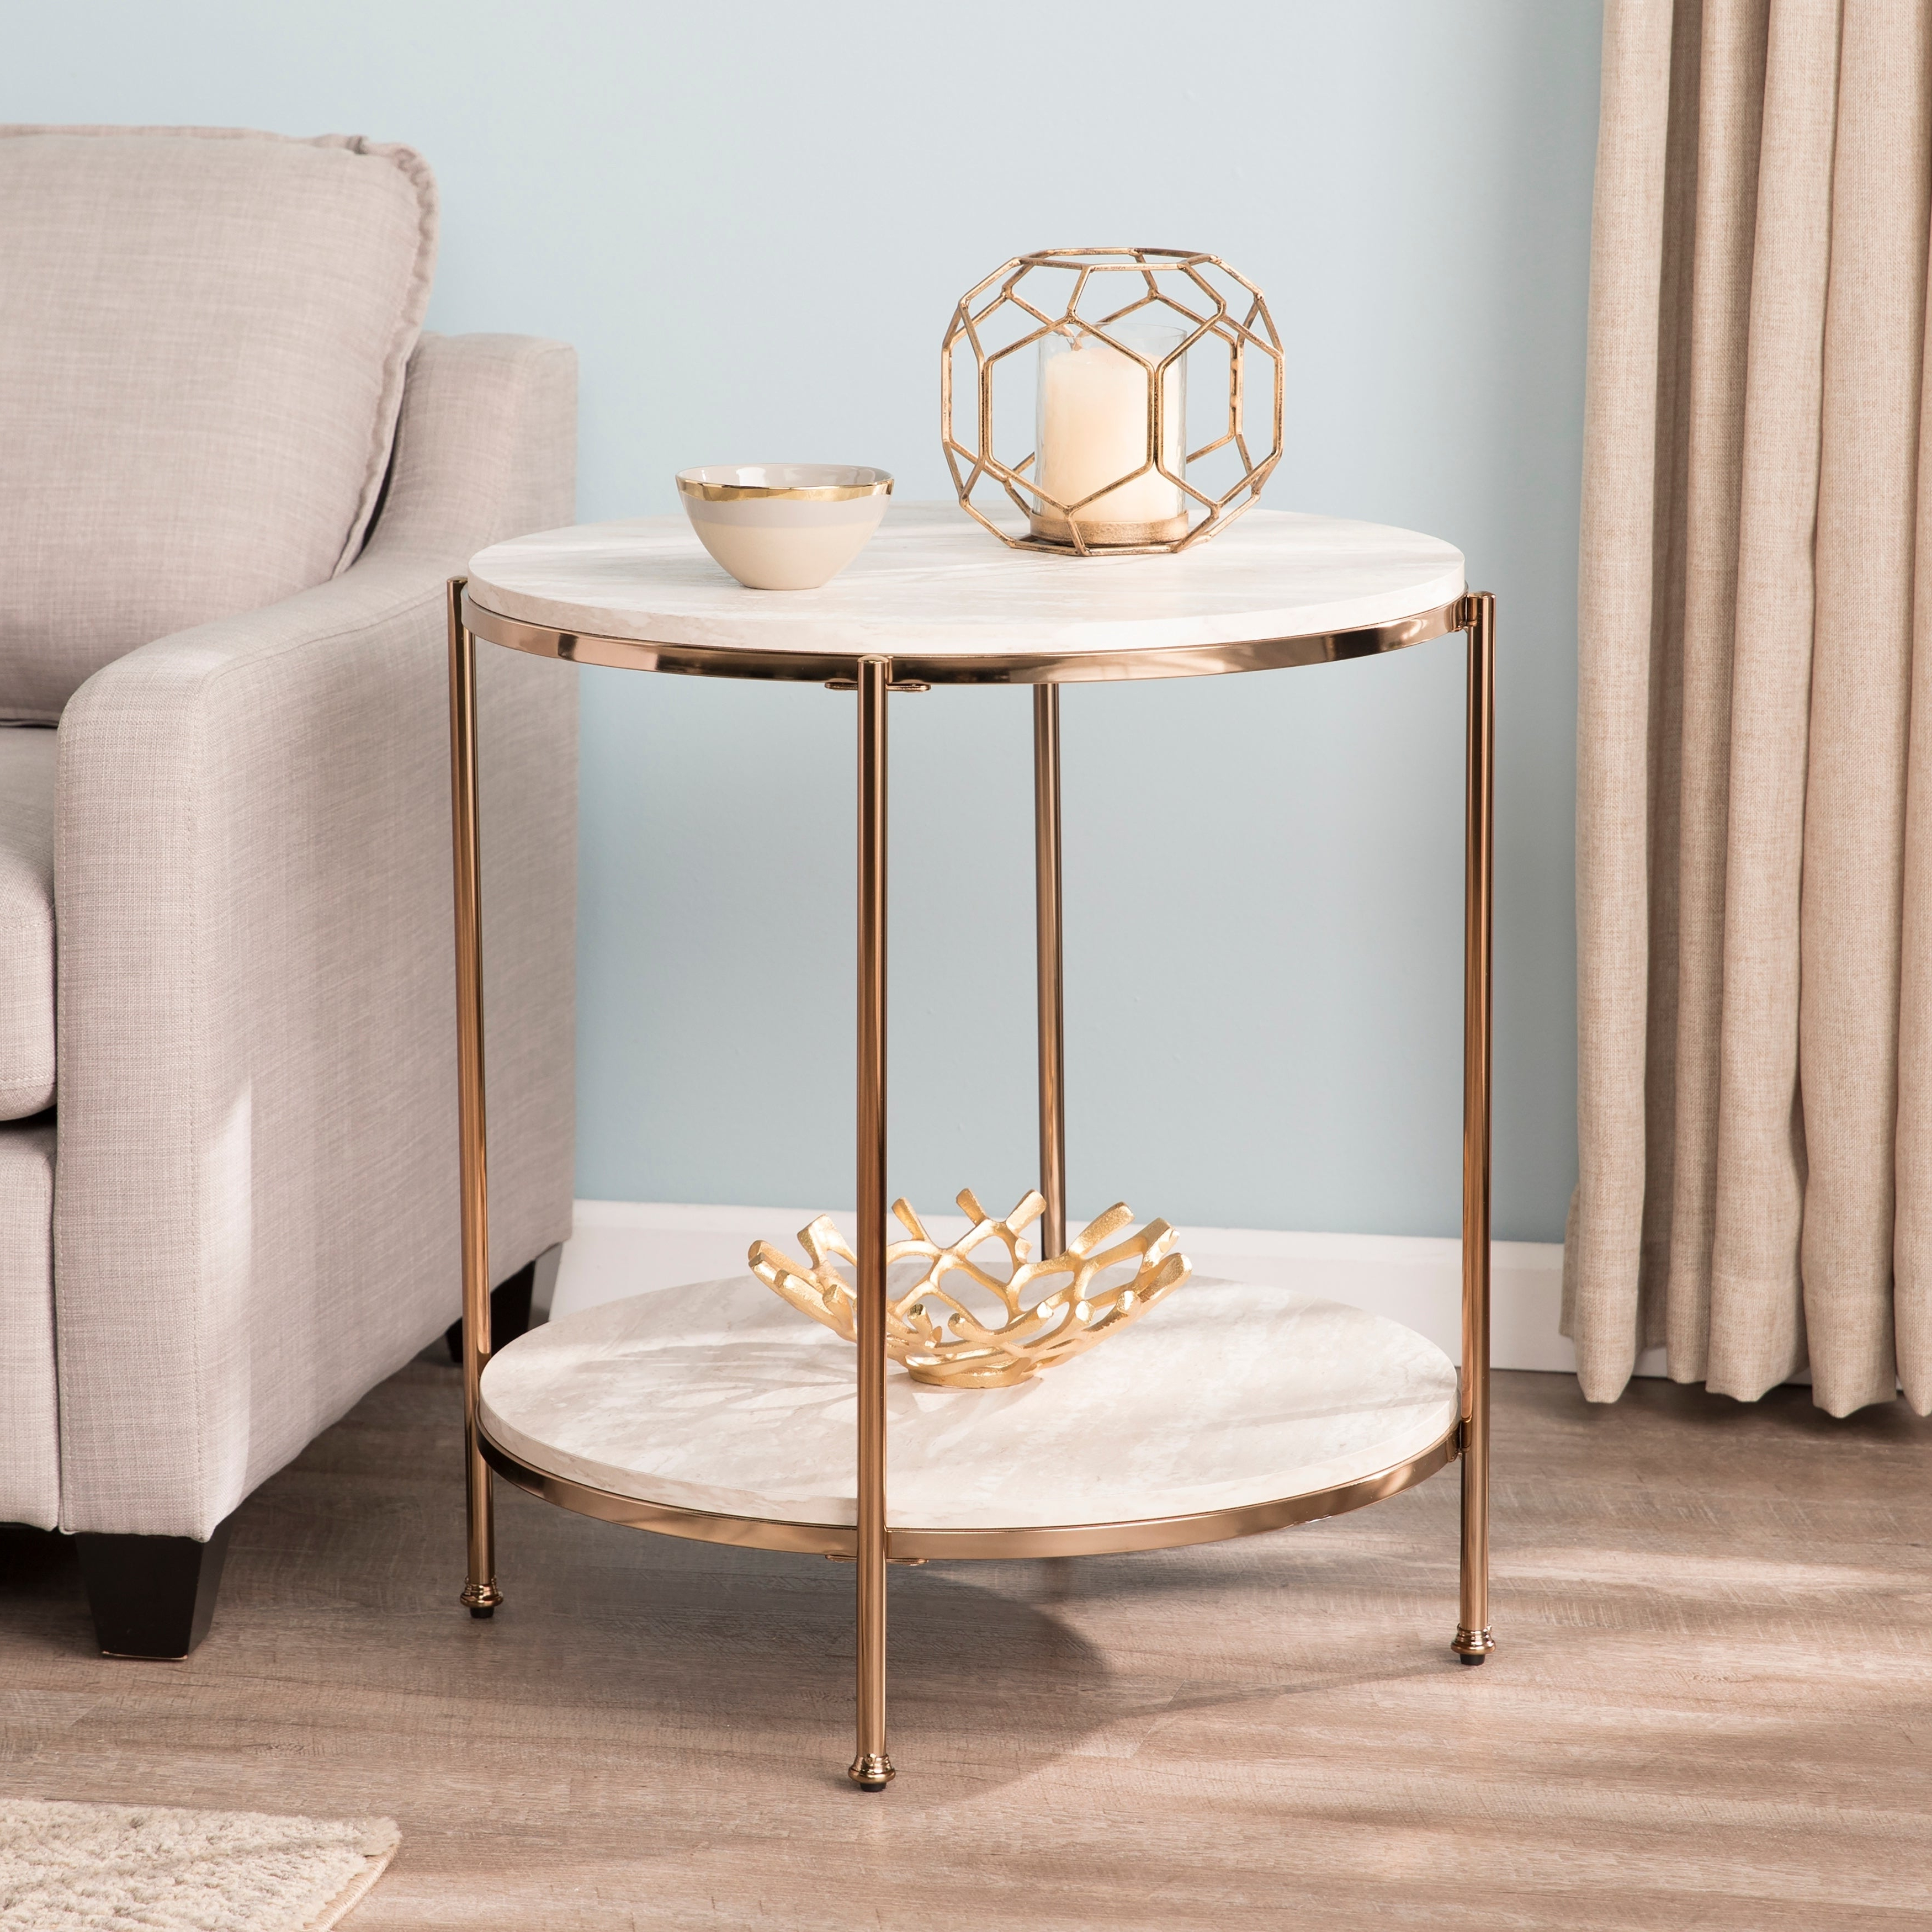 Silver Orchid Henderson Round Faux Stone End Table Within Current Silver Orchid Henderson Faux Stone Round End Tables (View 5 of 20)